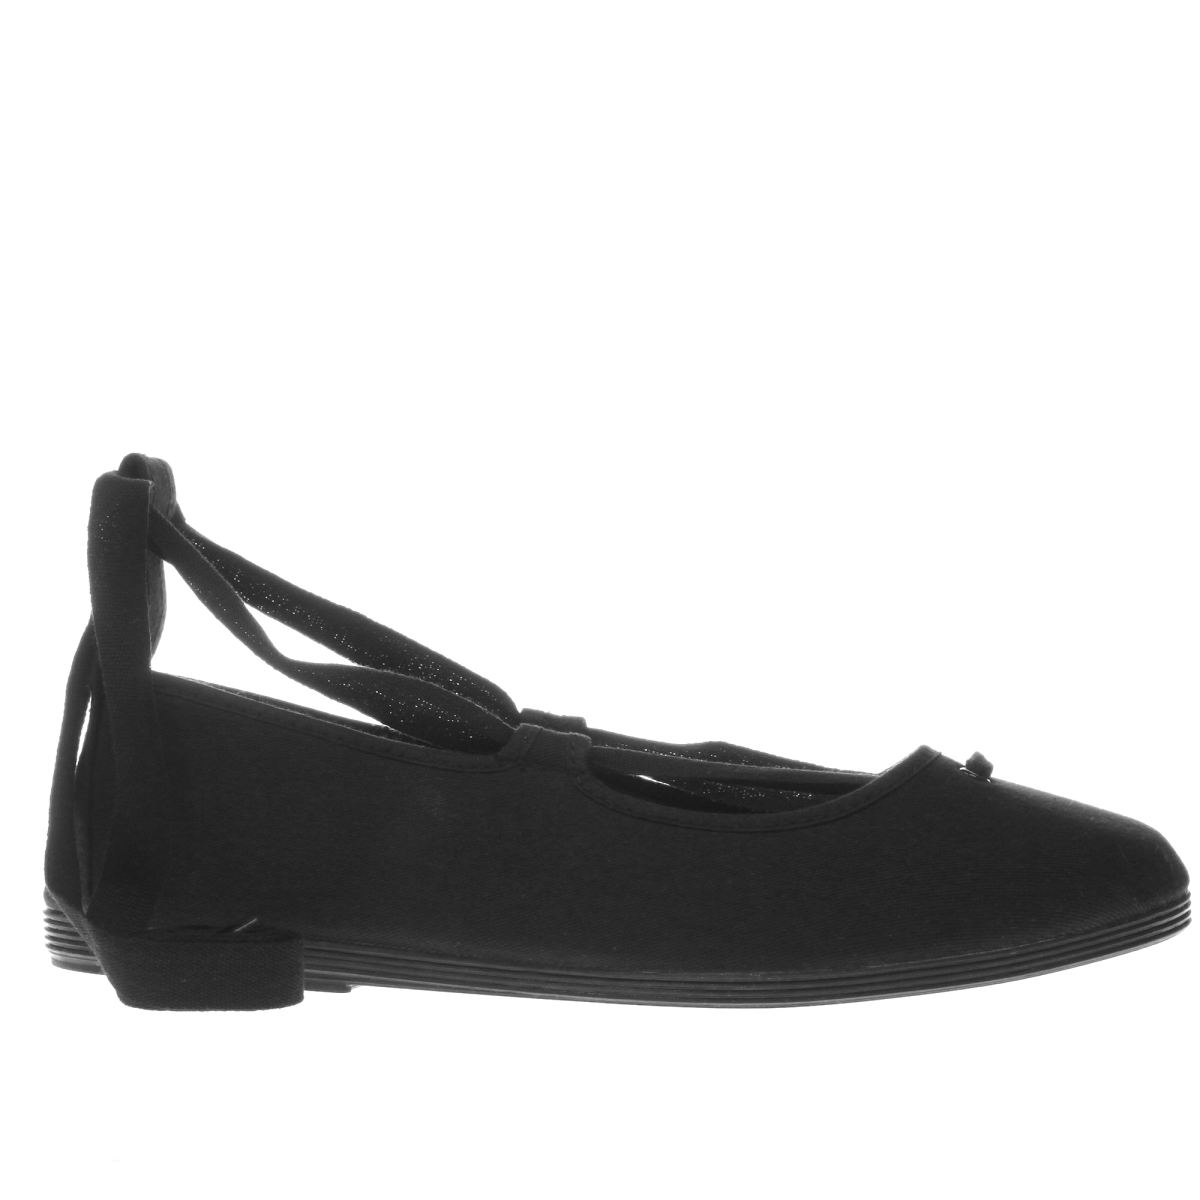 flossy black che flat shoes